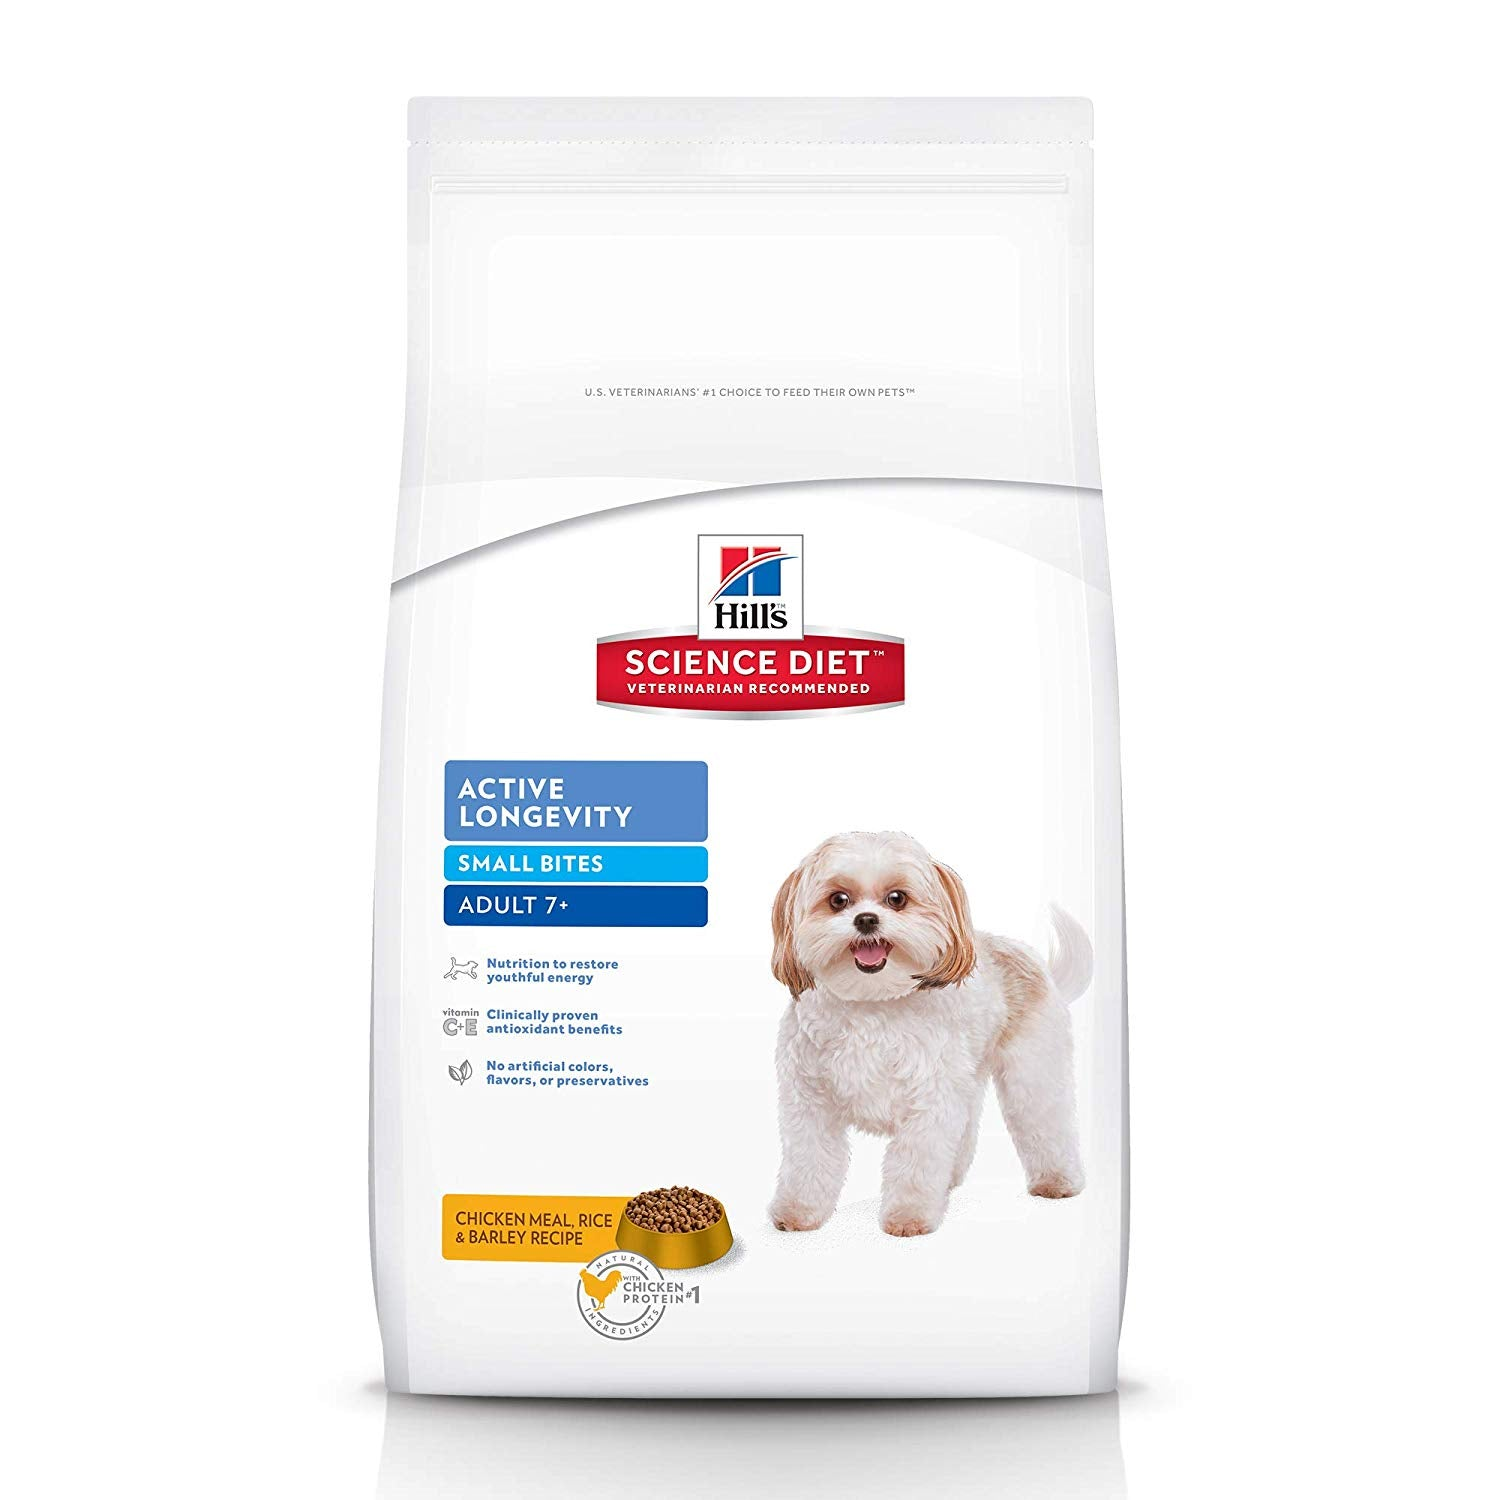 Hill's Science Diet Adult 7+ Active Longevity Small Bite Chicken Meal Rice & Barley Dog Food 2 Kg - pet-club-india